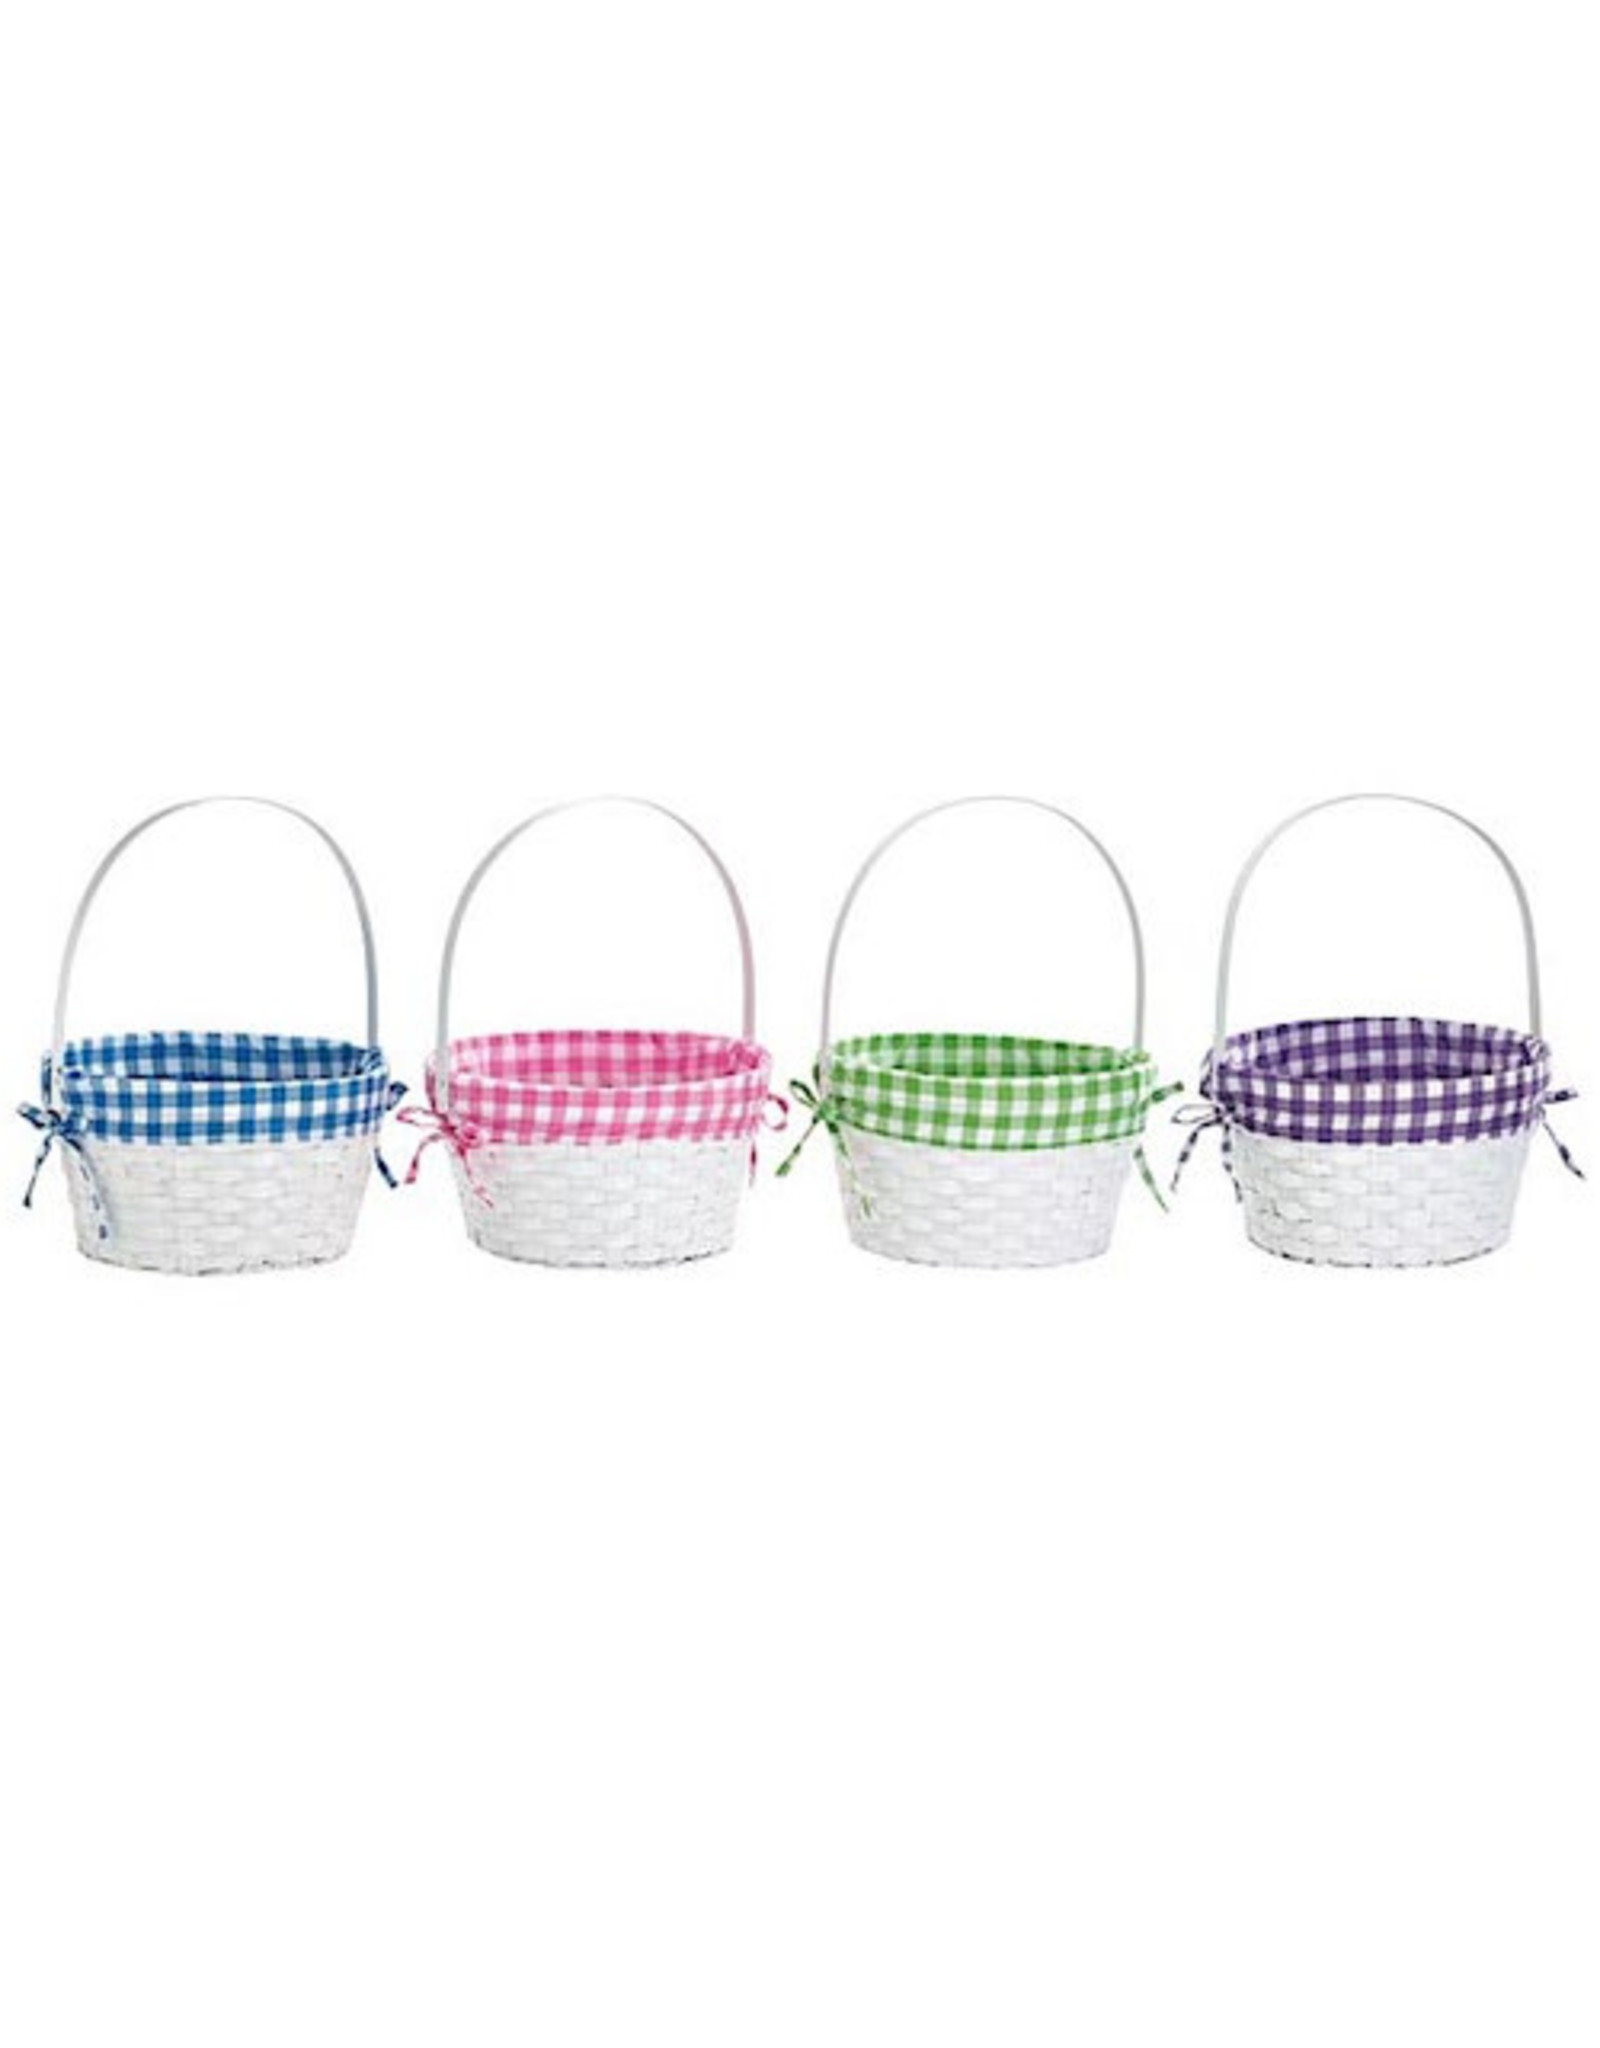 Burton & Burton Bamboo Basket Plaid